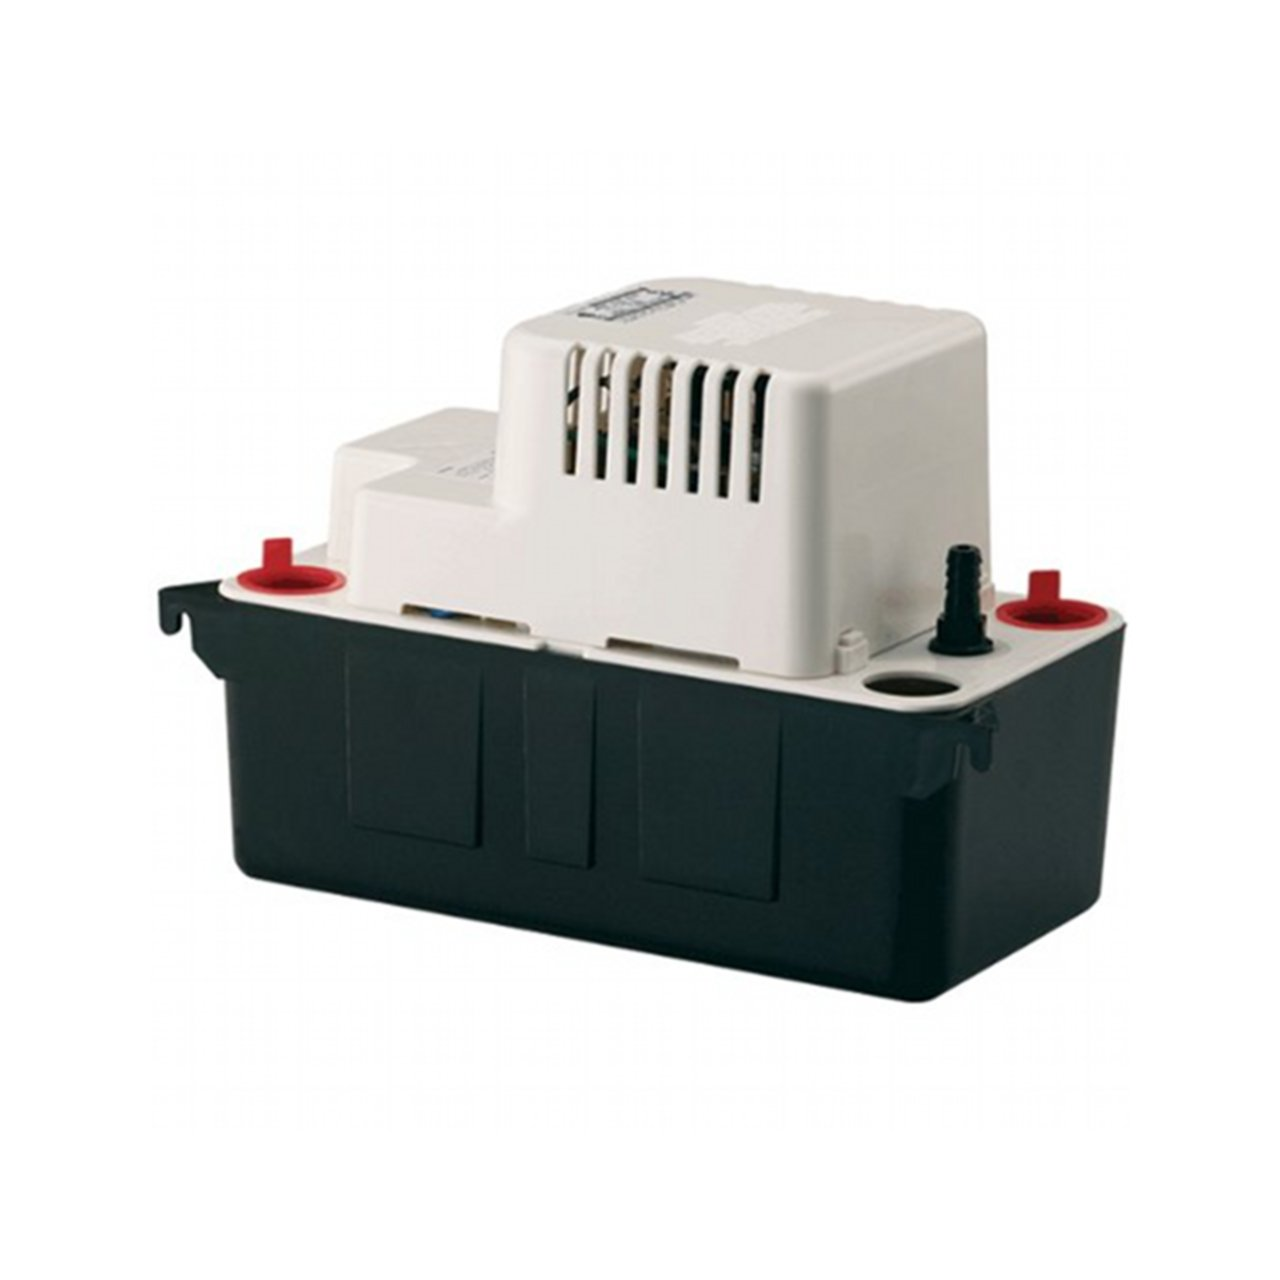 Little Giant 554425 VCMA-20ULS Condensate Removal 1/30 HP Pump with Safety Switch